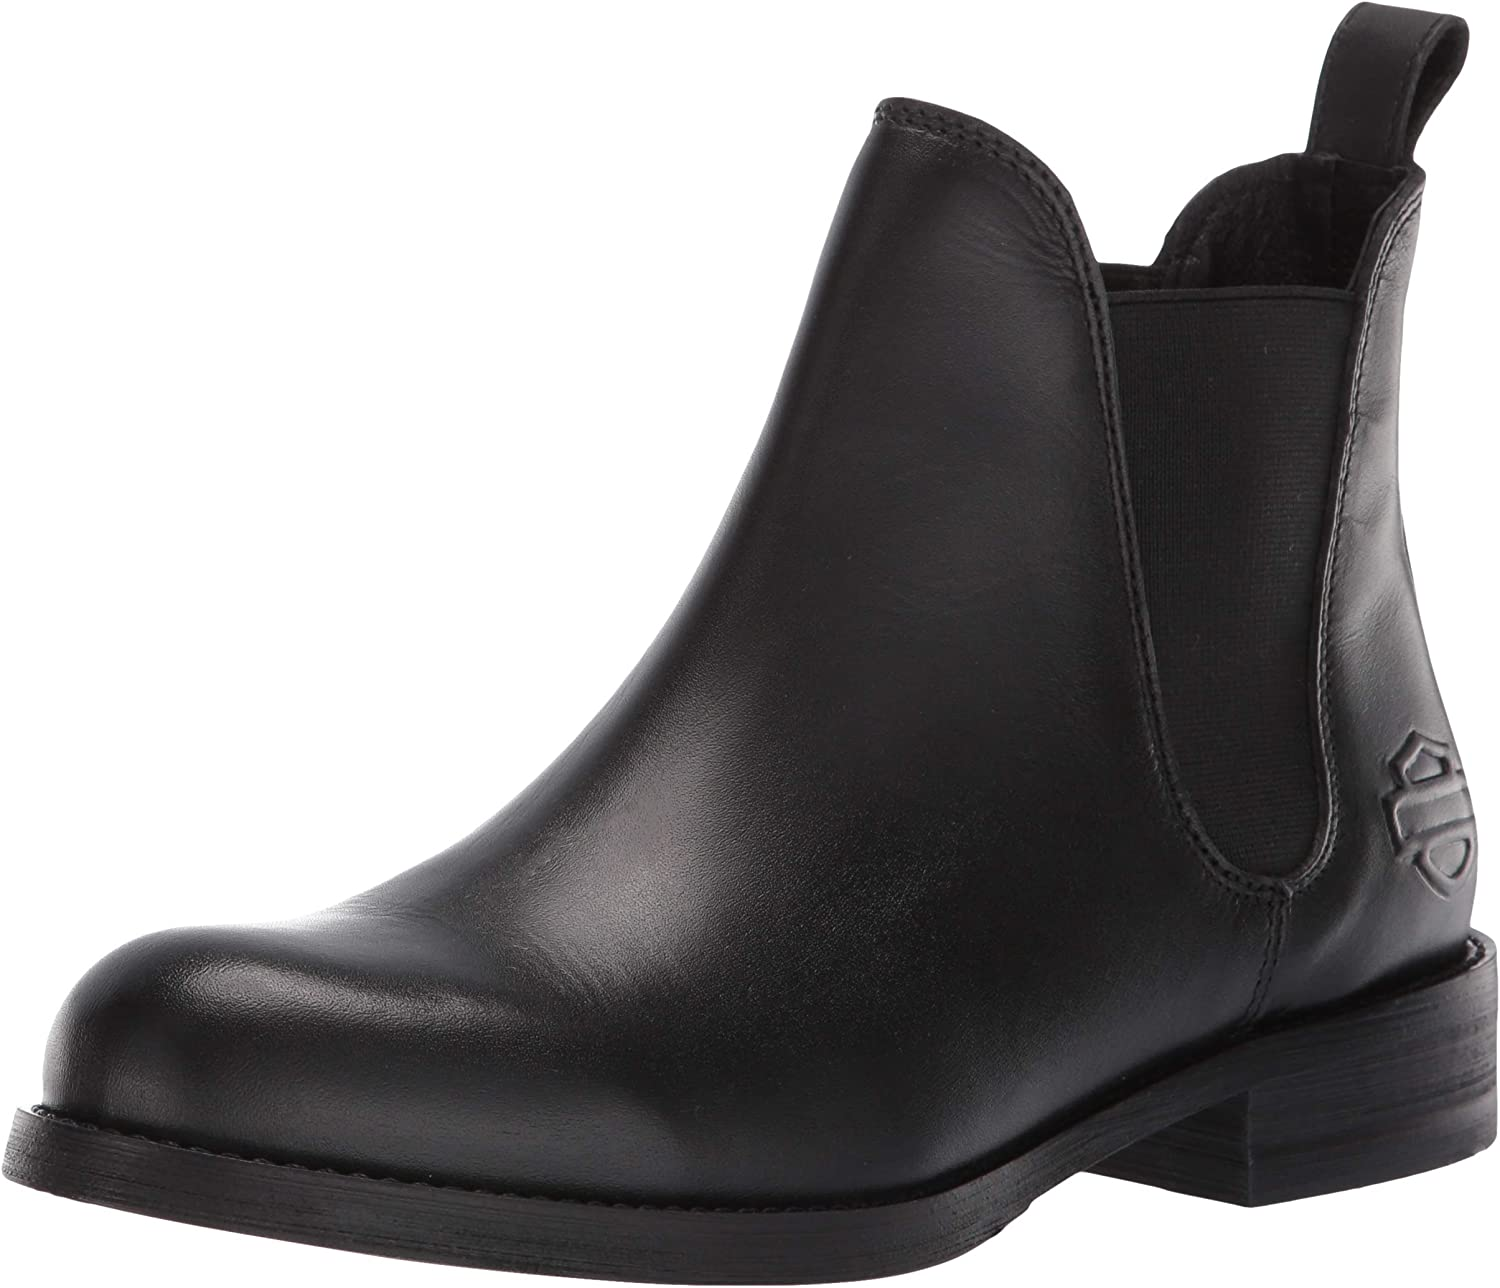 LADIES HARLEY DAVIDSON DELANO D84408 PULL ON BLOCK HEEL CASUAL ANKLE BOOTS SIZE